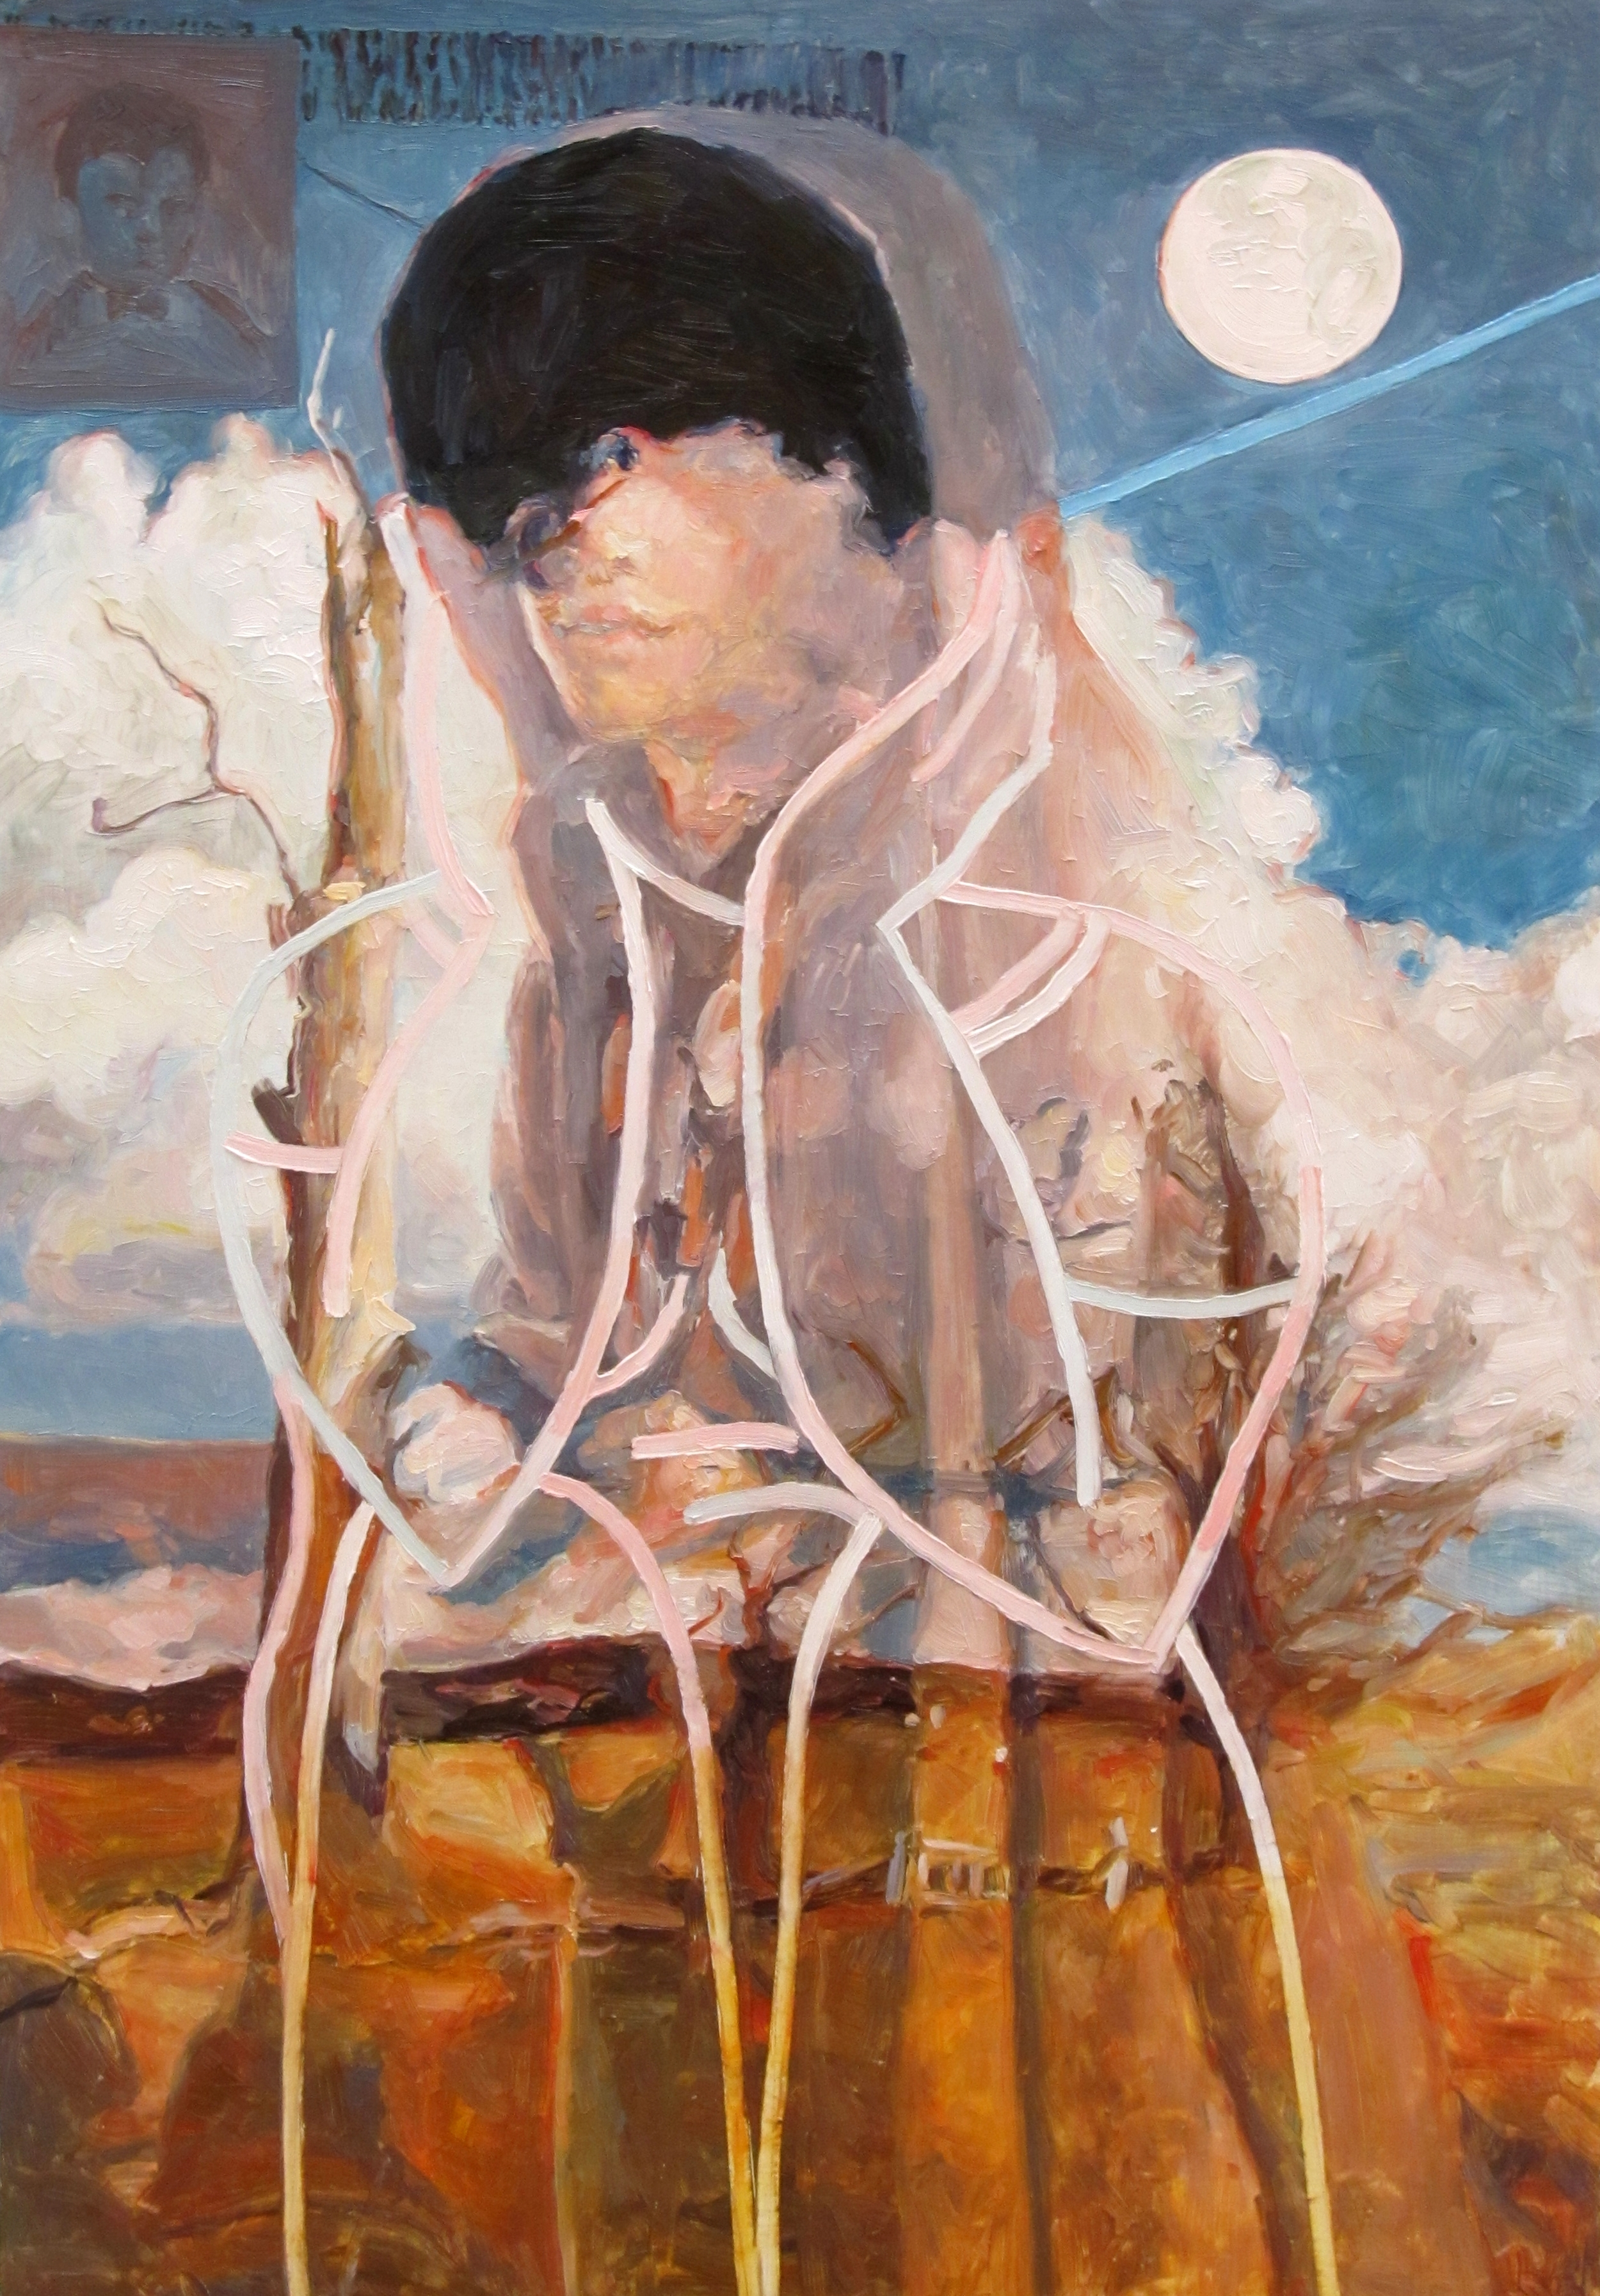 Ghost in Dressing Gown (after Joan Ross), oil on board, 60 x 40 cm, 2013.